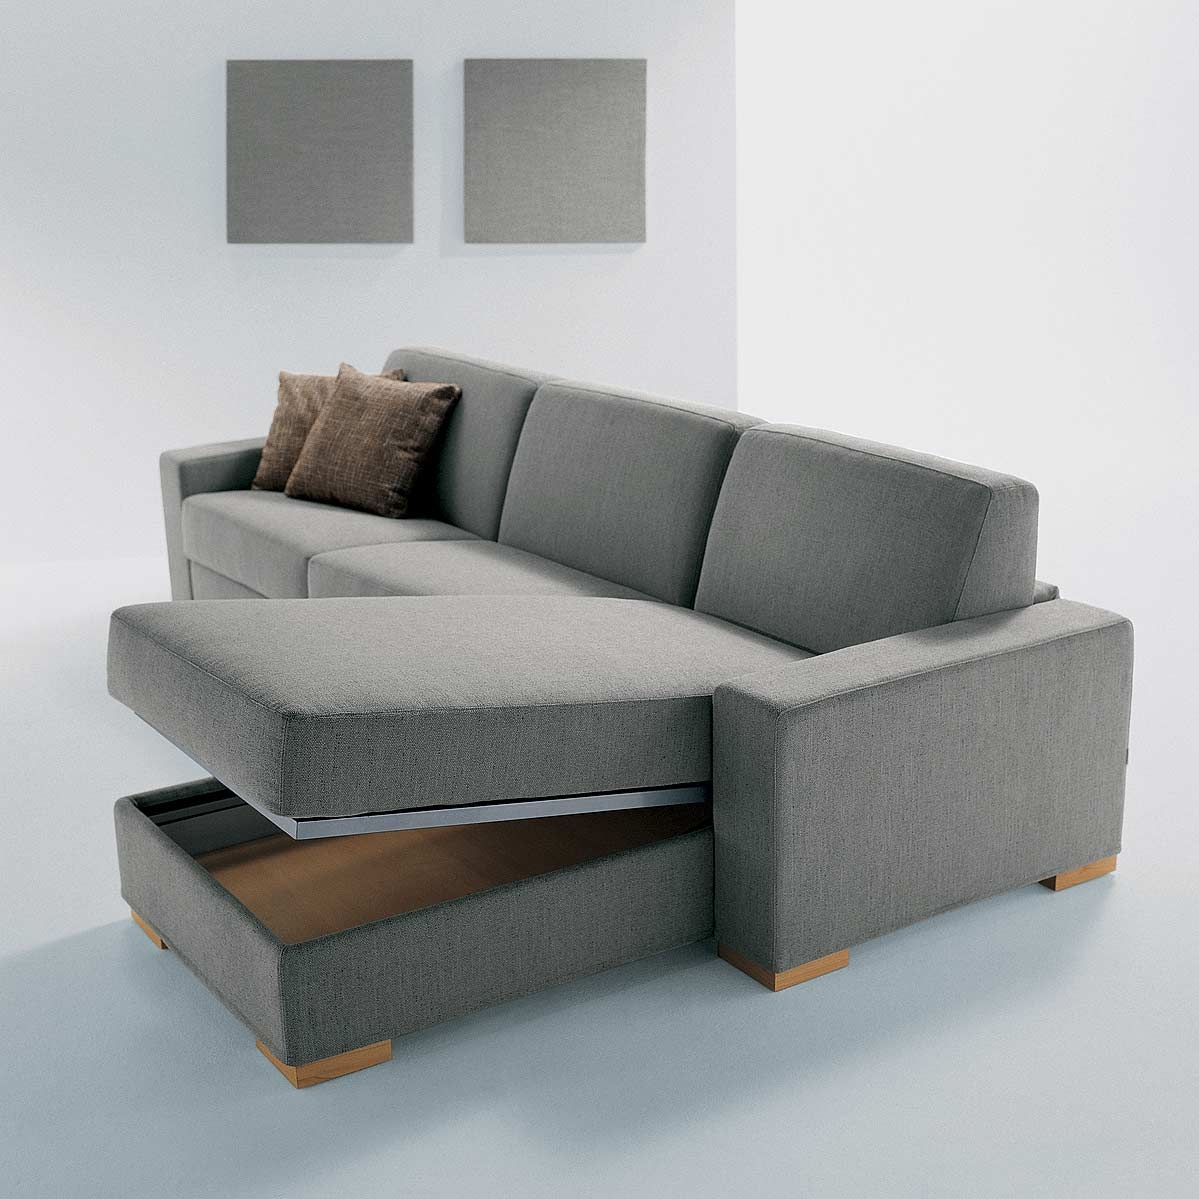 Fascinating Sofa Sleeper With Storage Inside Contemporary Gray Sofa Bed